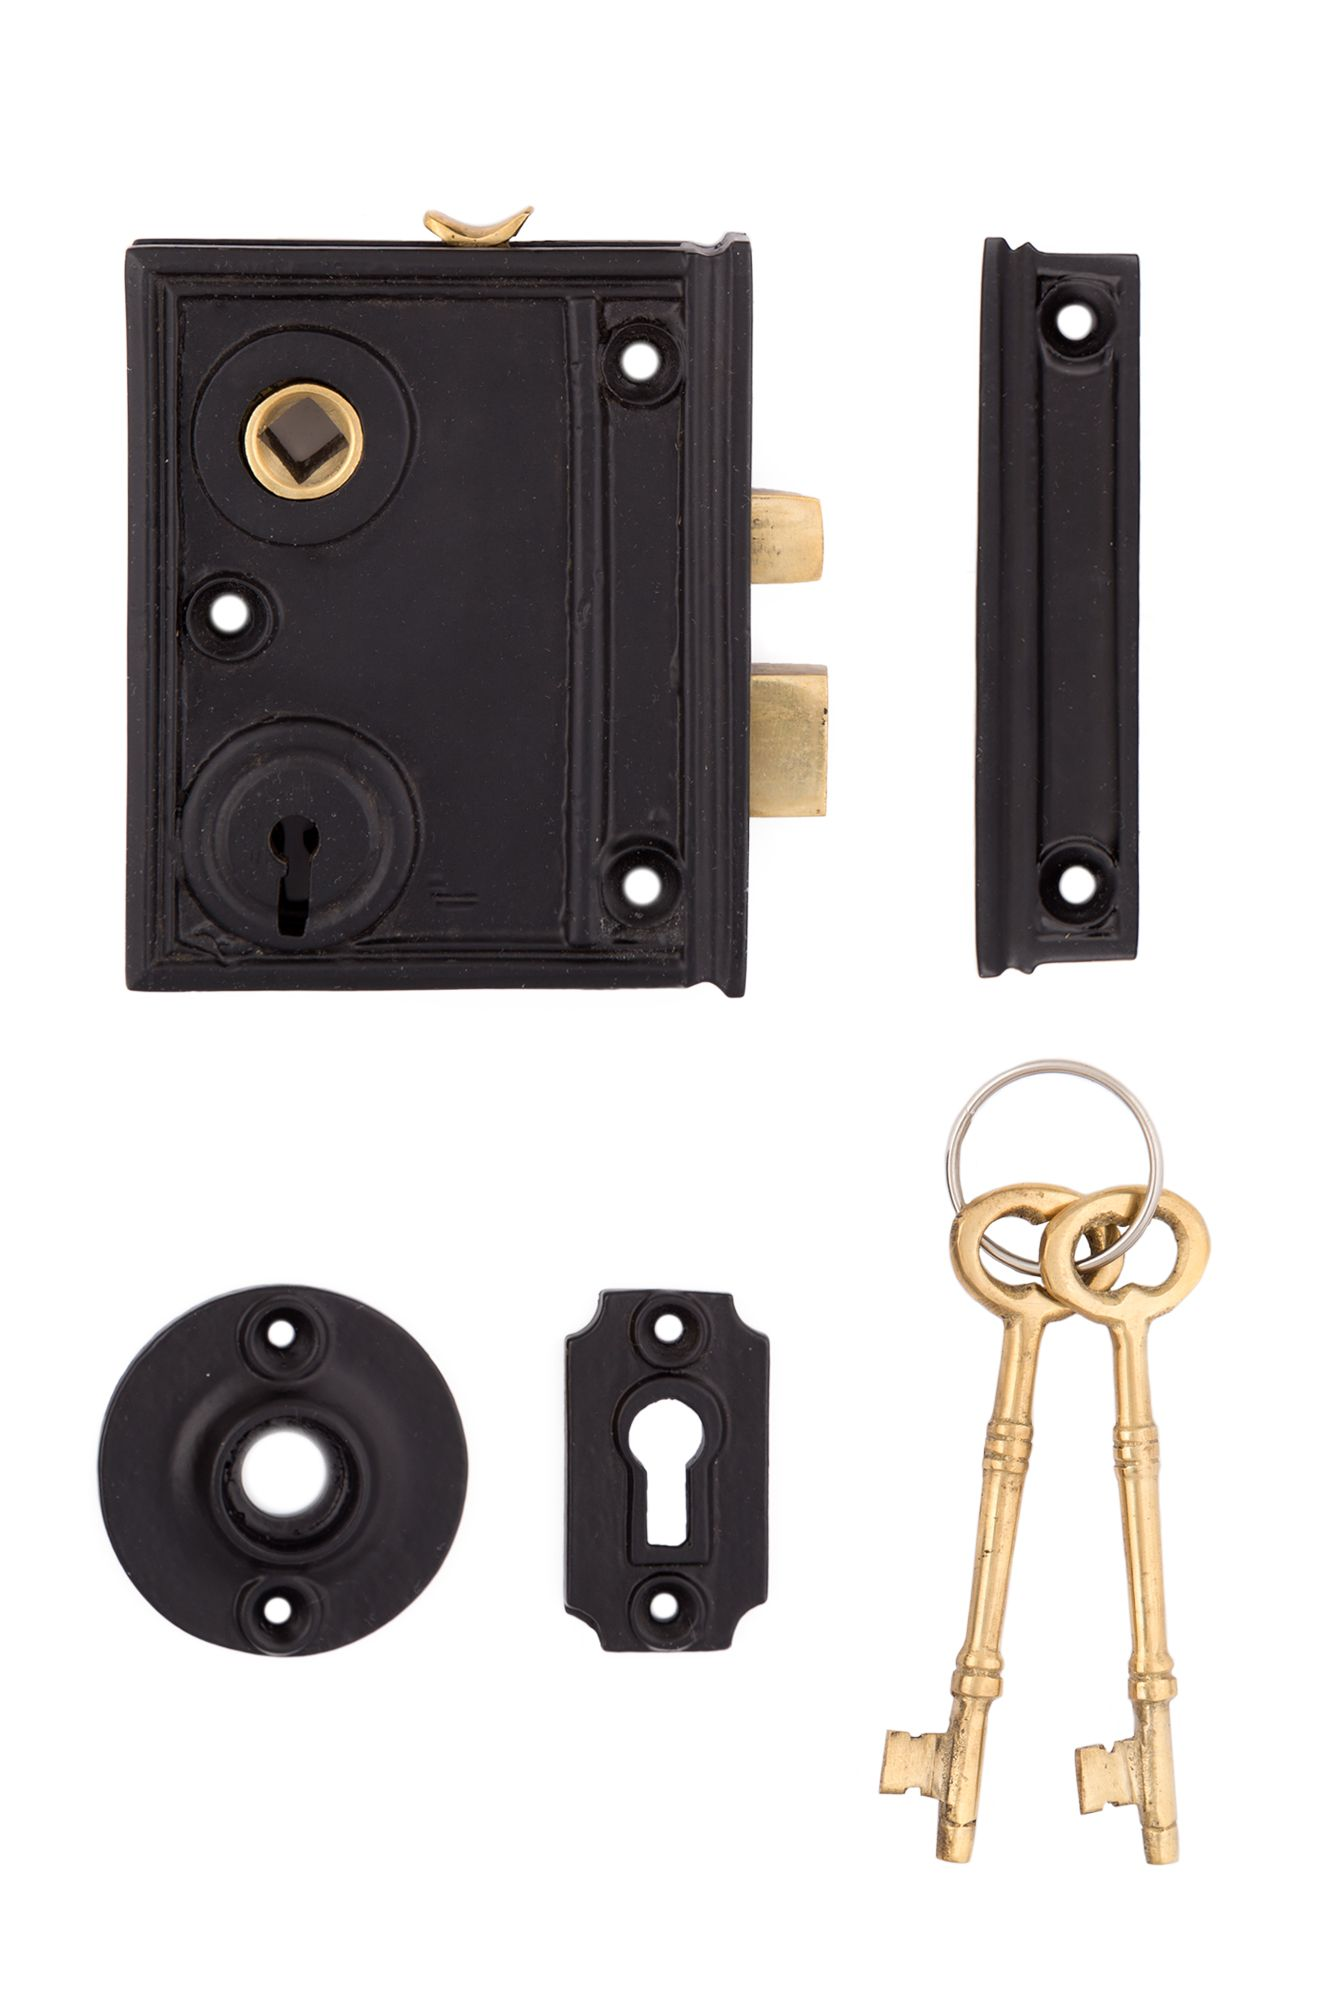 Reproduction Vertical Cast Iron Rim Lock From The Charleston Hardware Co Lock Set Cast Iron It Cast